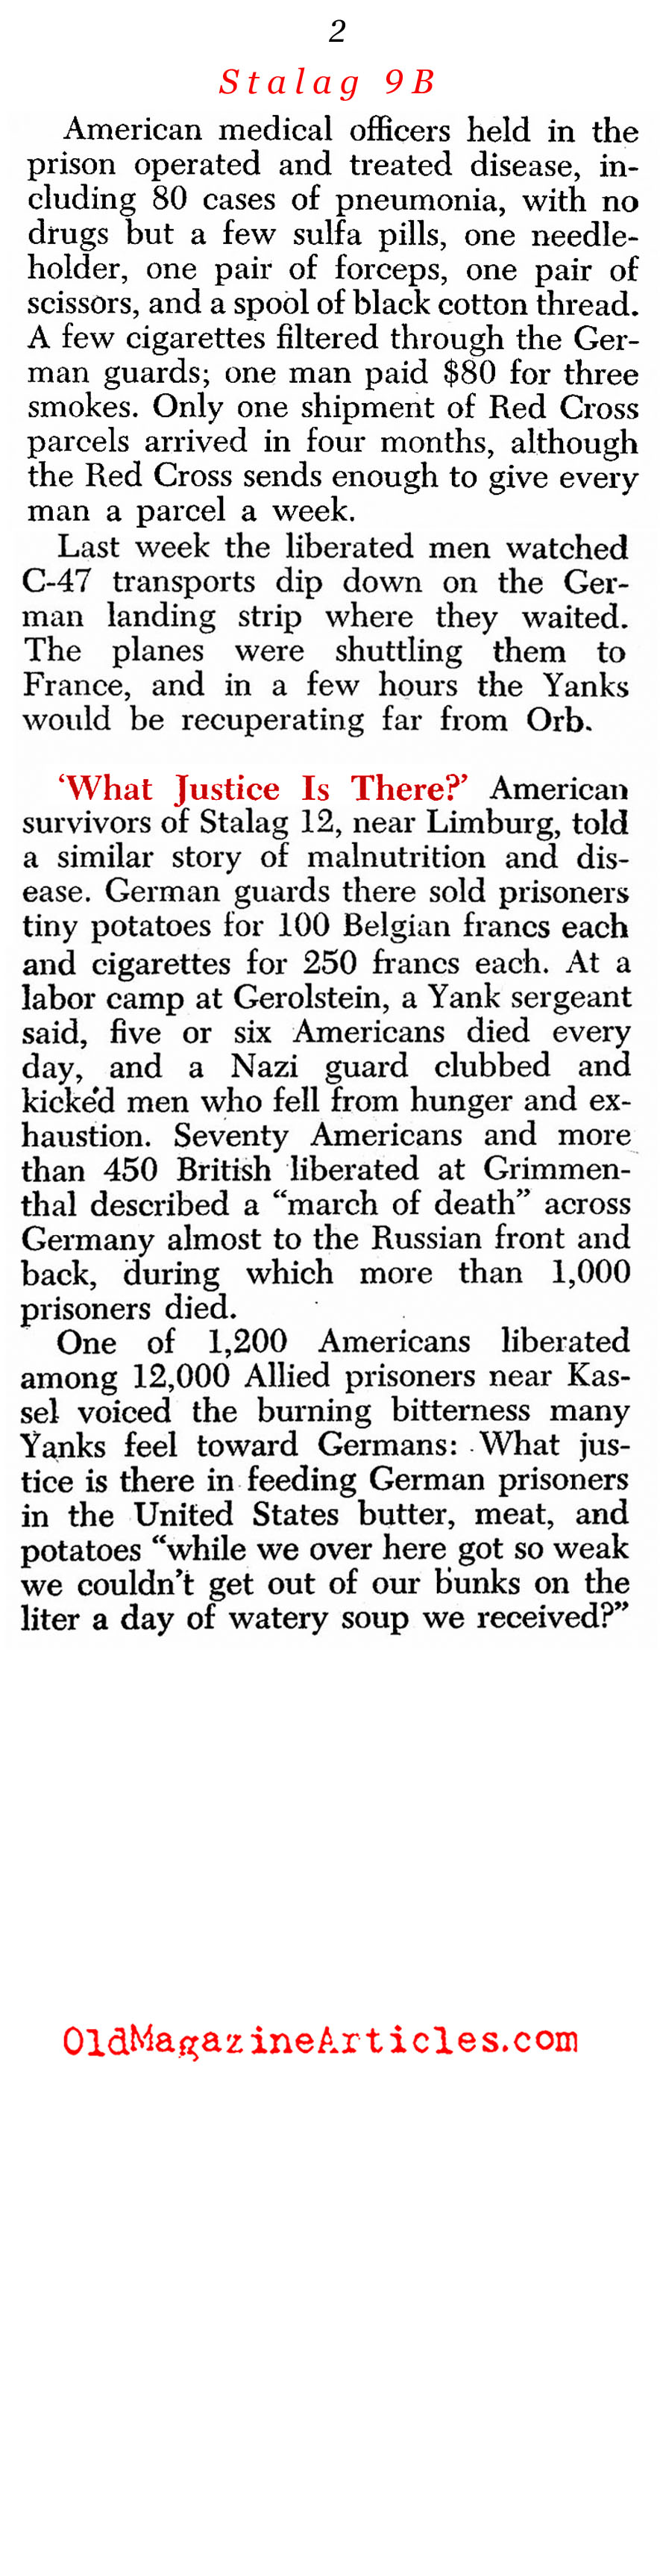 Nightmare At Stalag IXB (Newsweek Magazine, 1945)